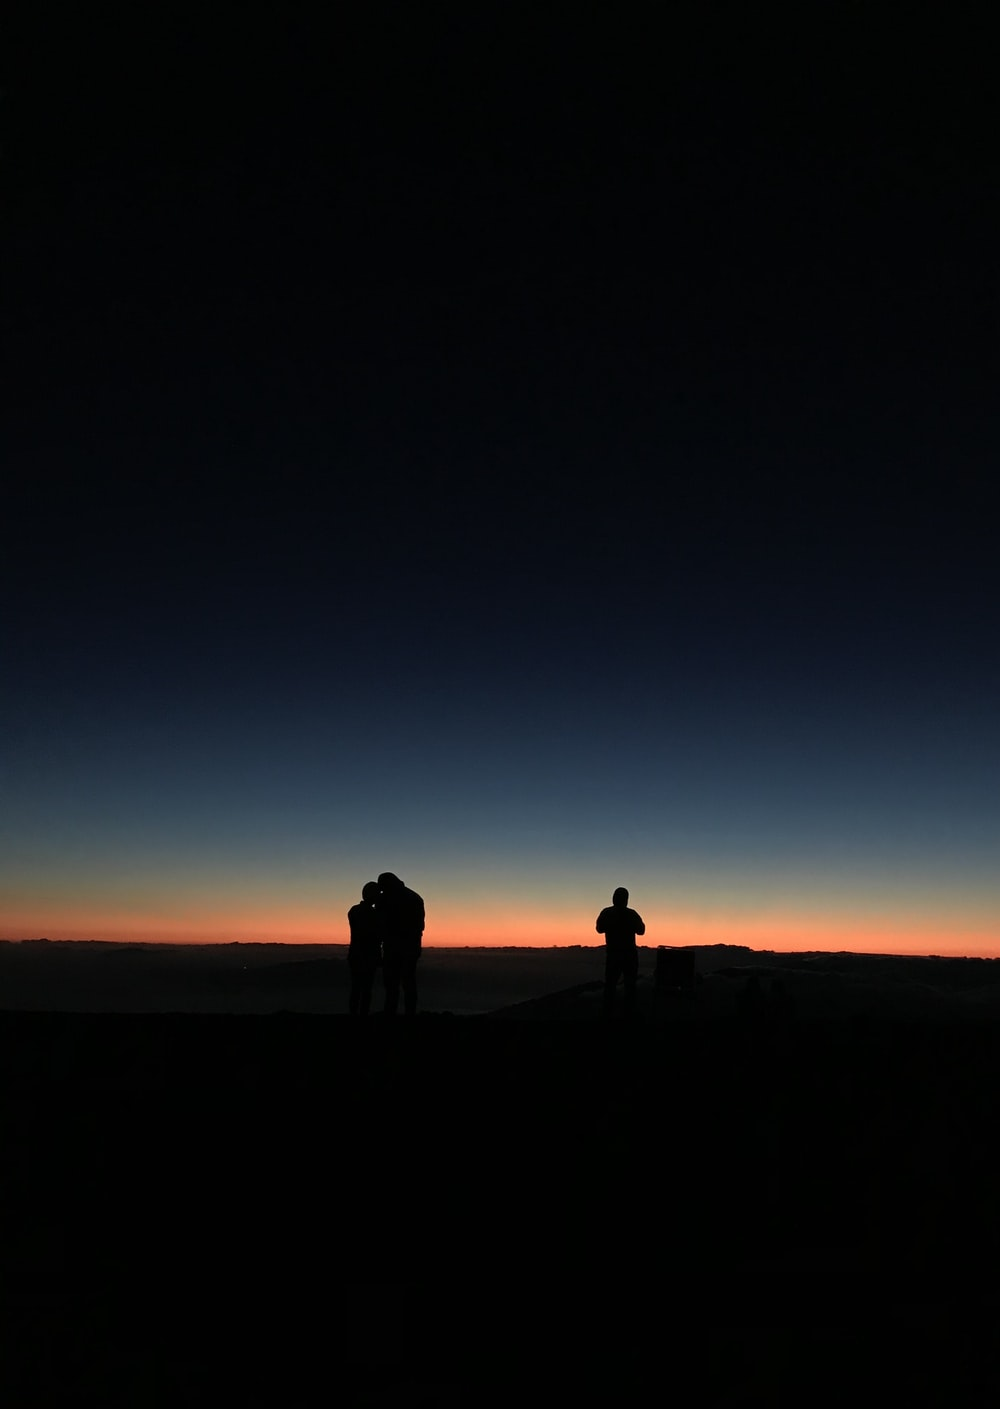 silhouette of 3 people at sunset